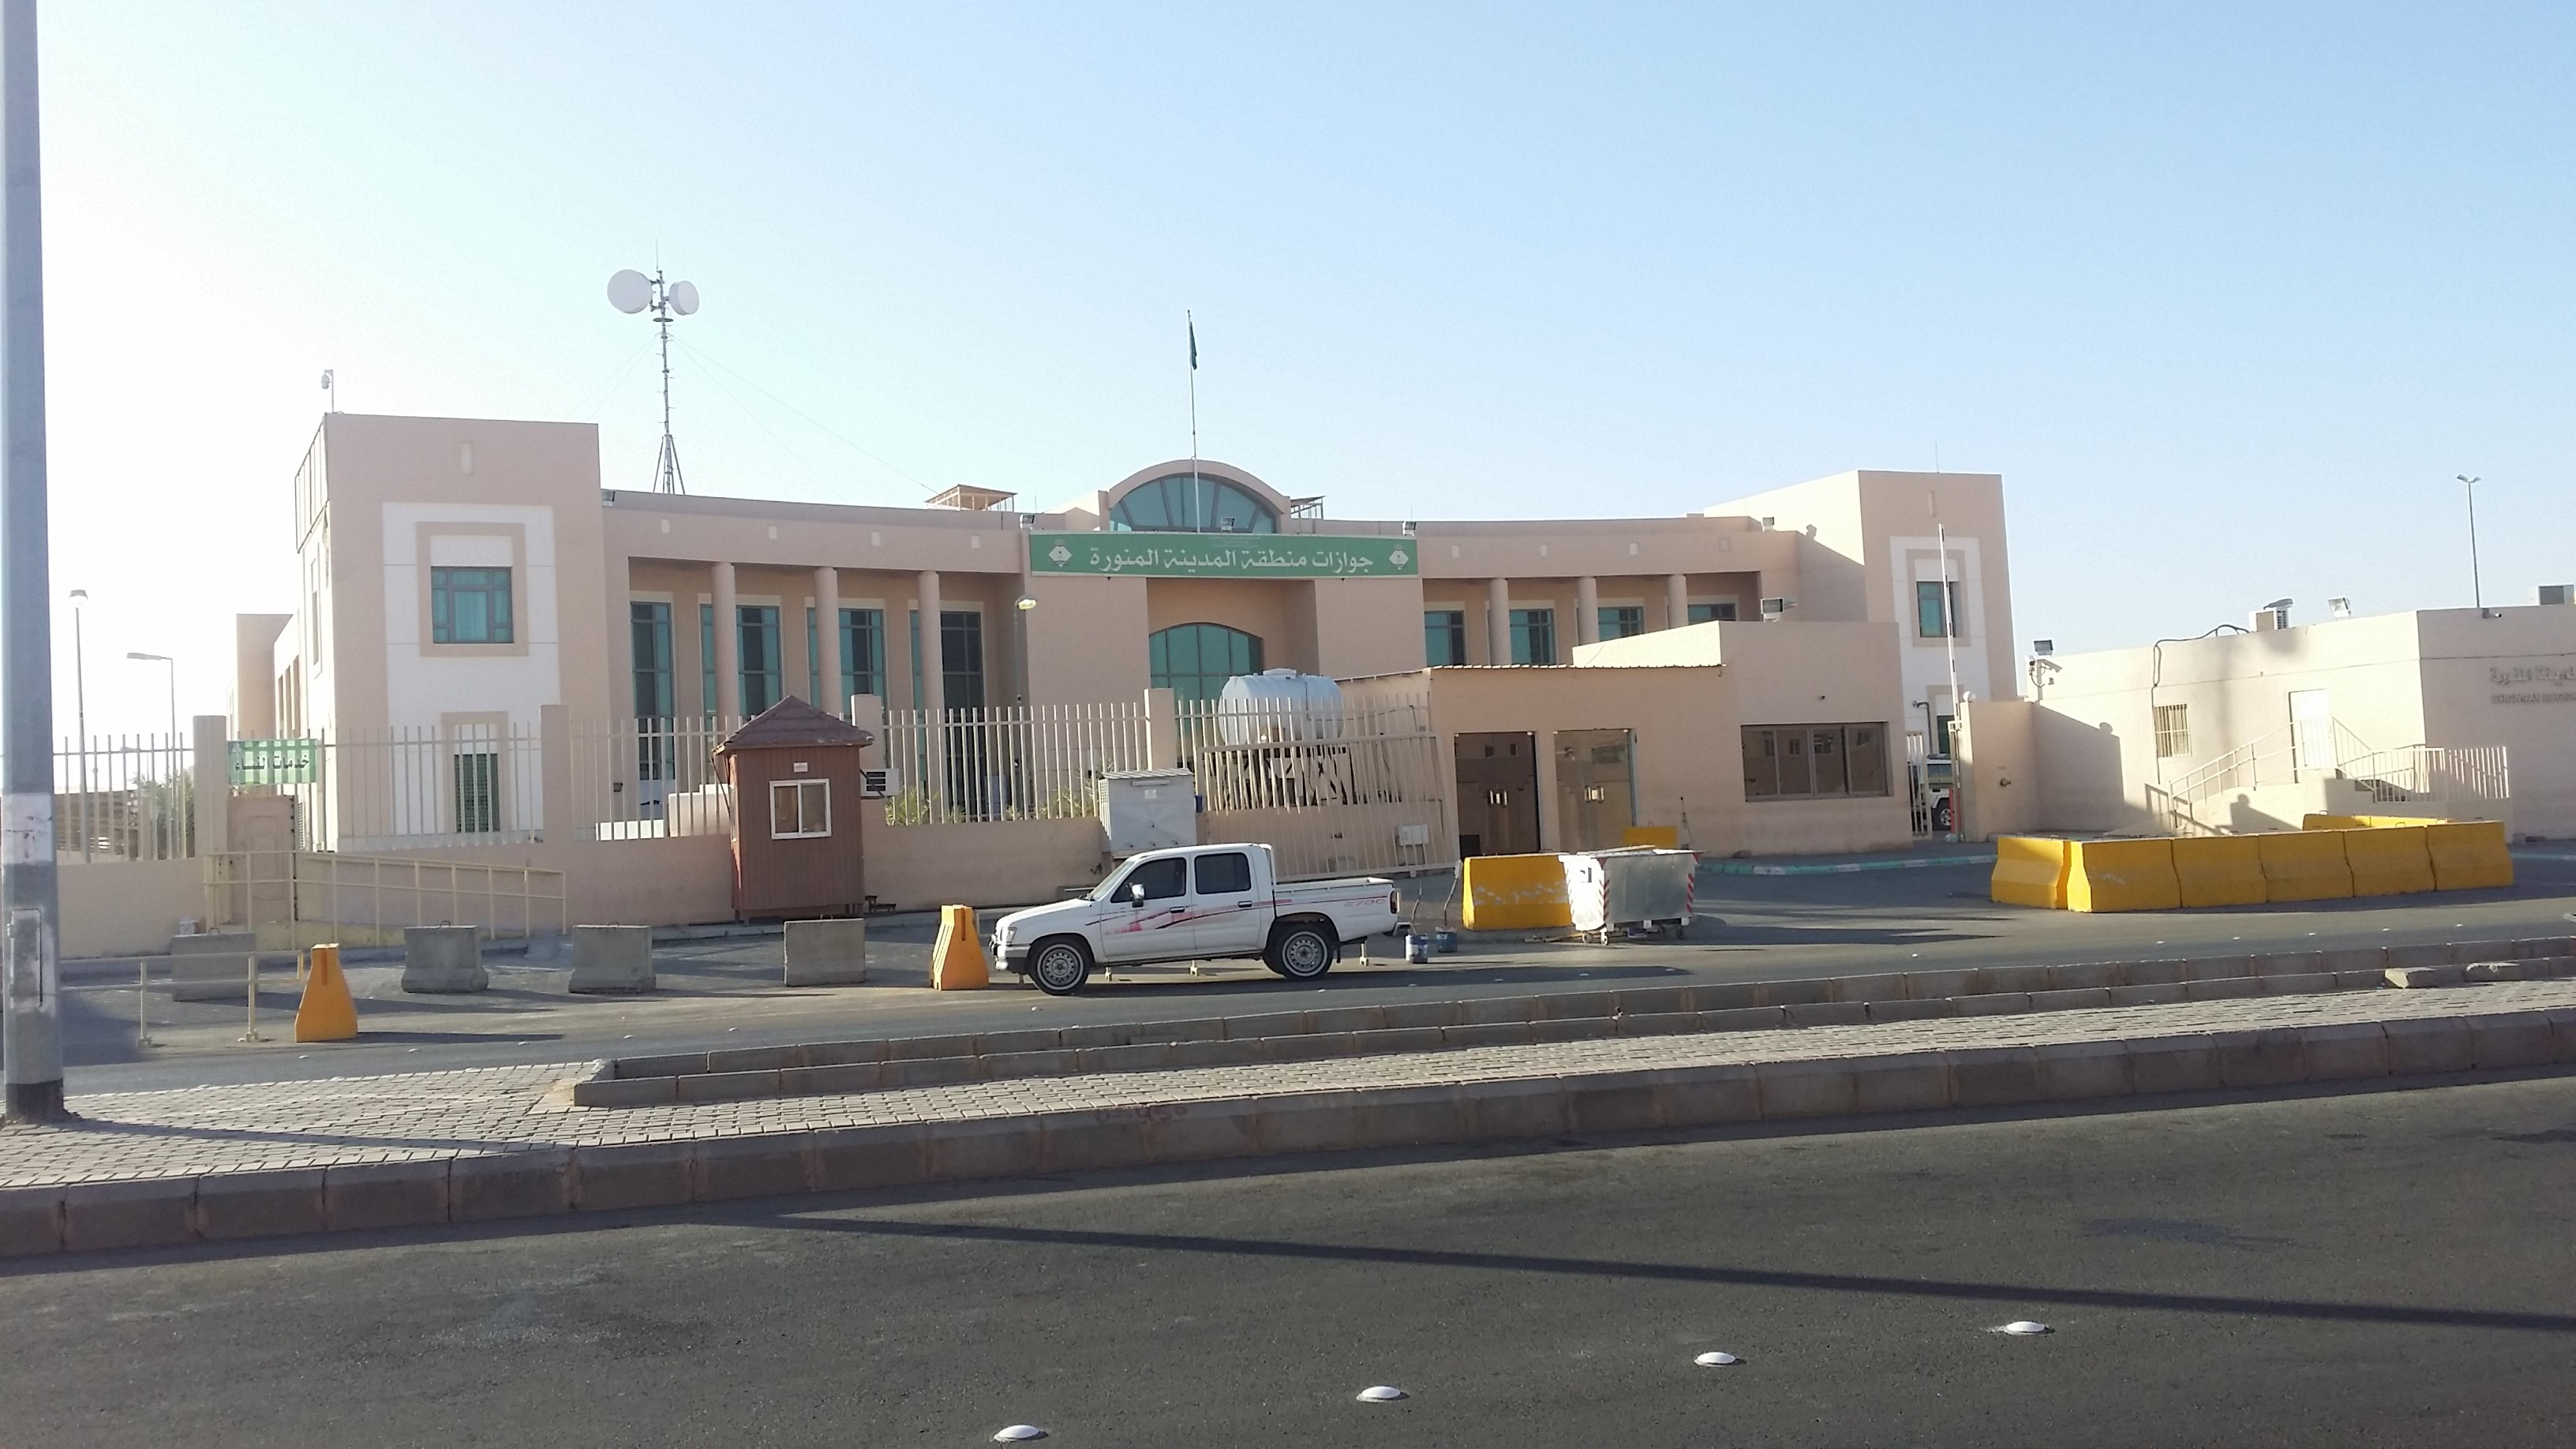 View of the front of General Administration of Passports Department building, located in Medina in the Kingdom of Saudi Arabia